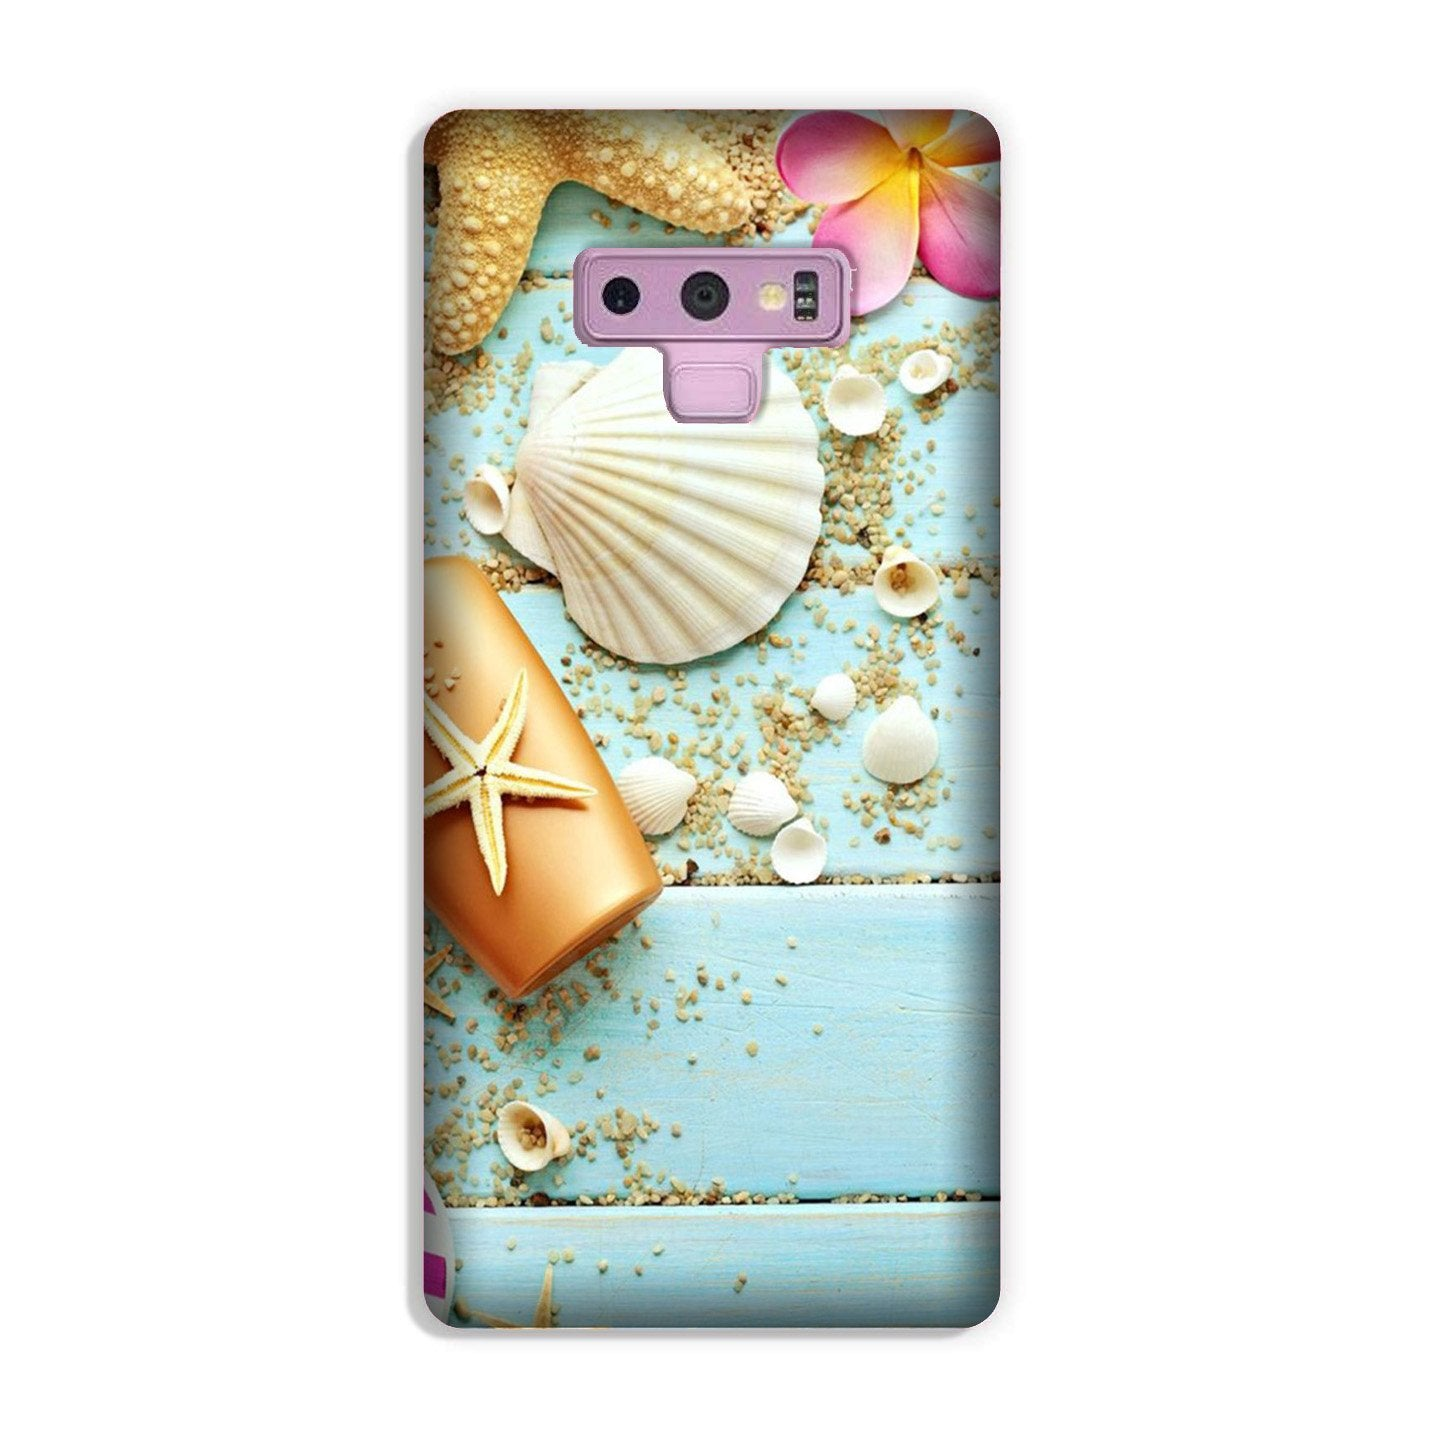 Sea Shells Case for Galaxy Note 9